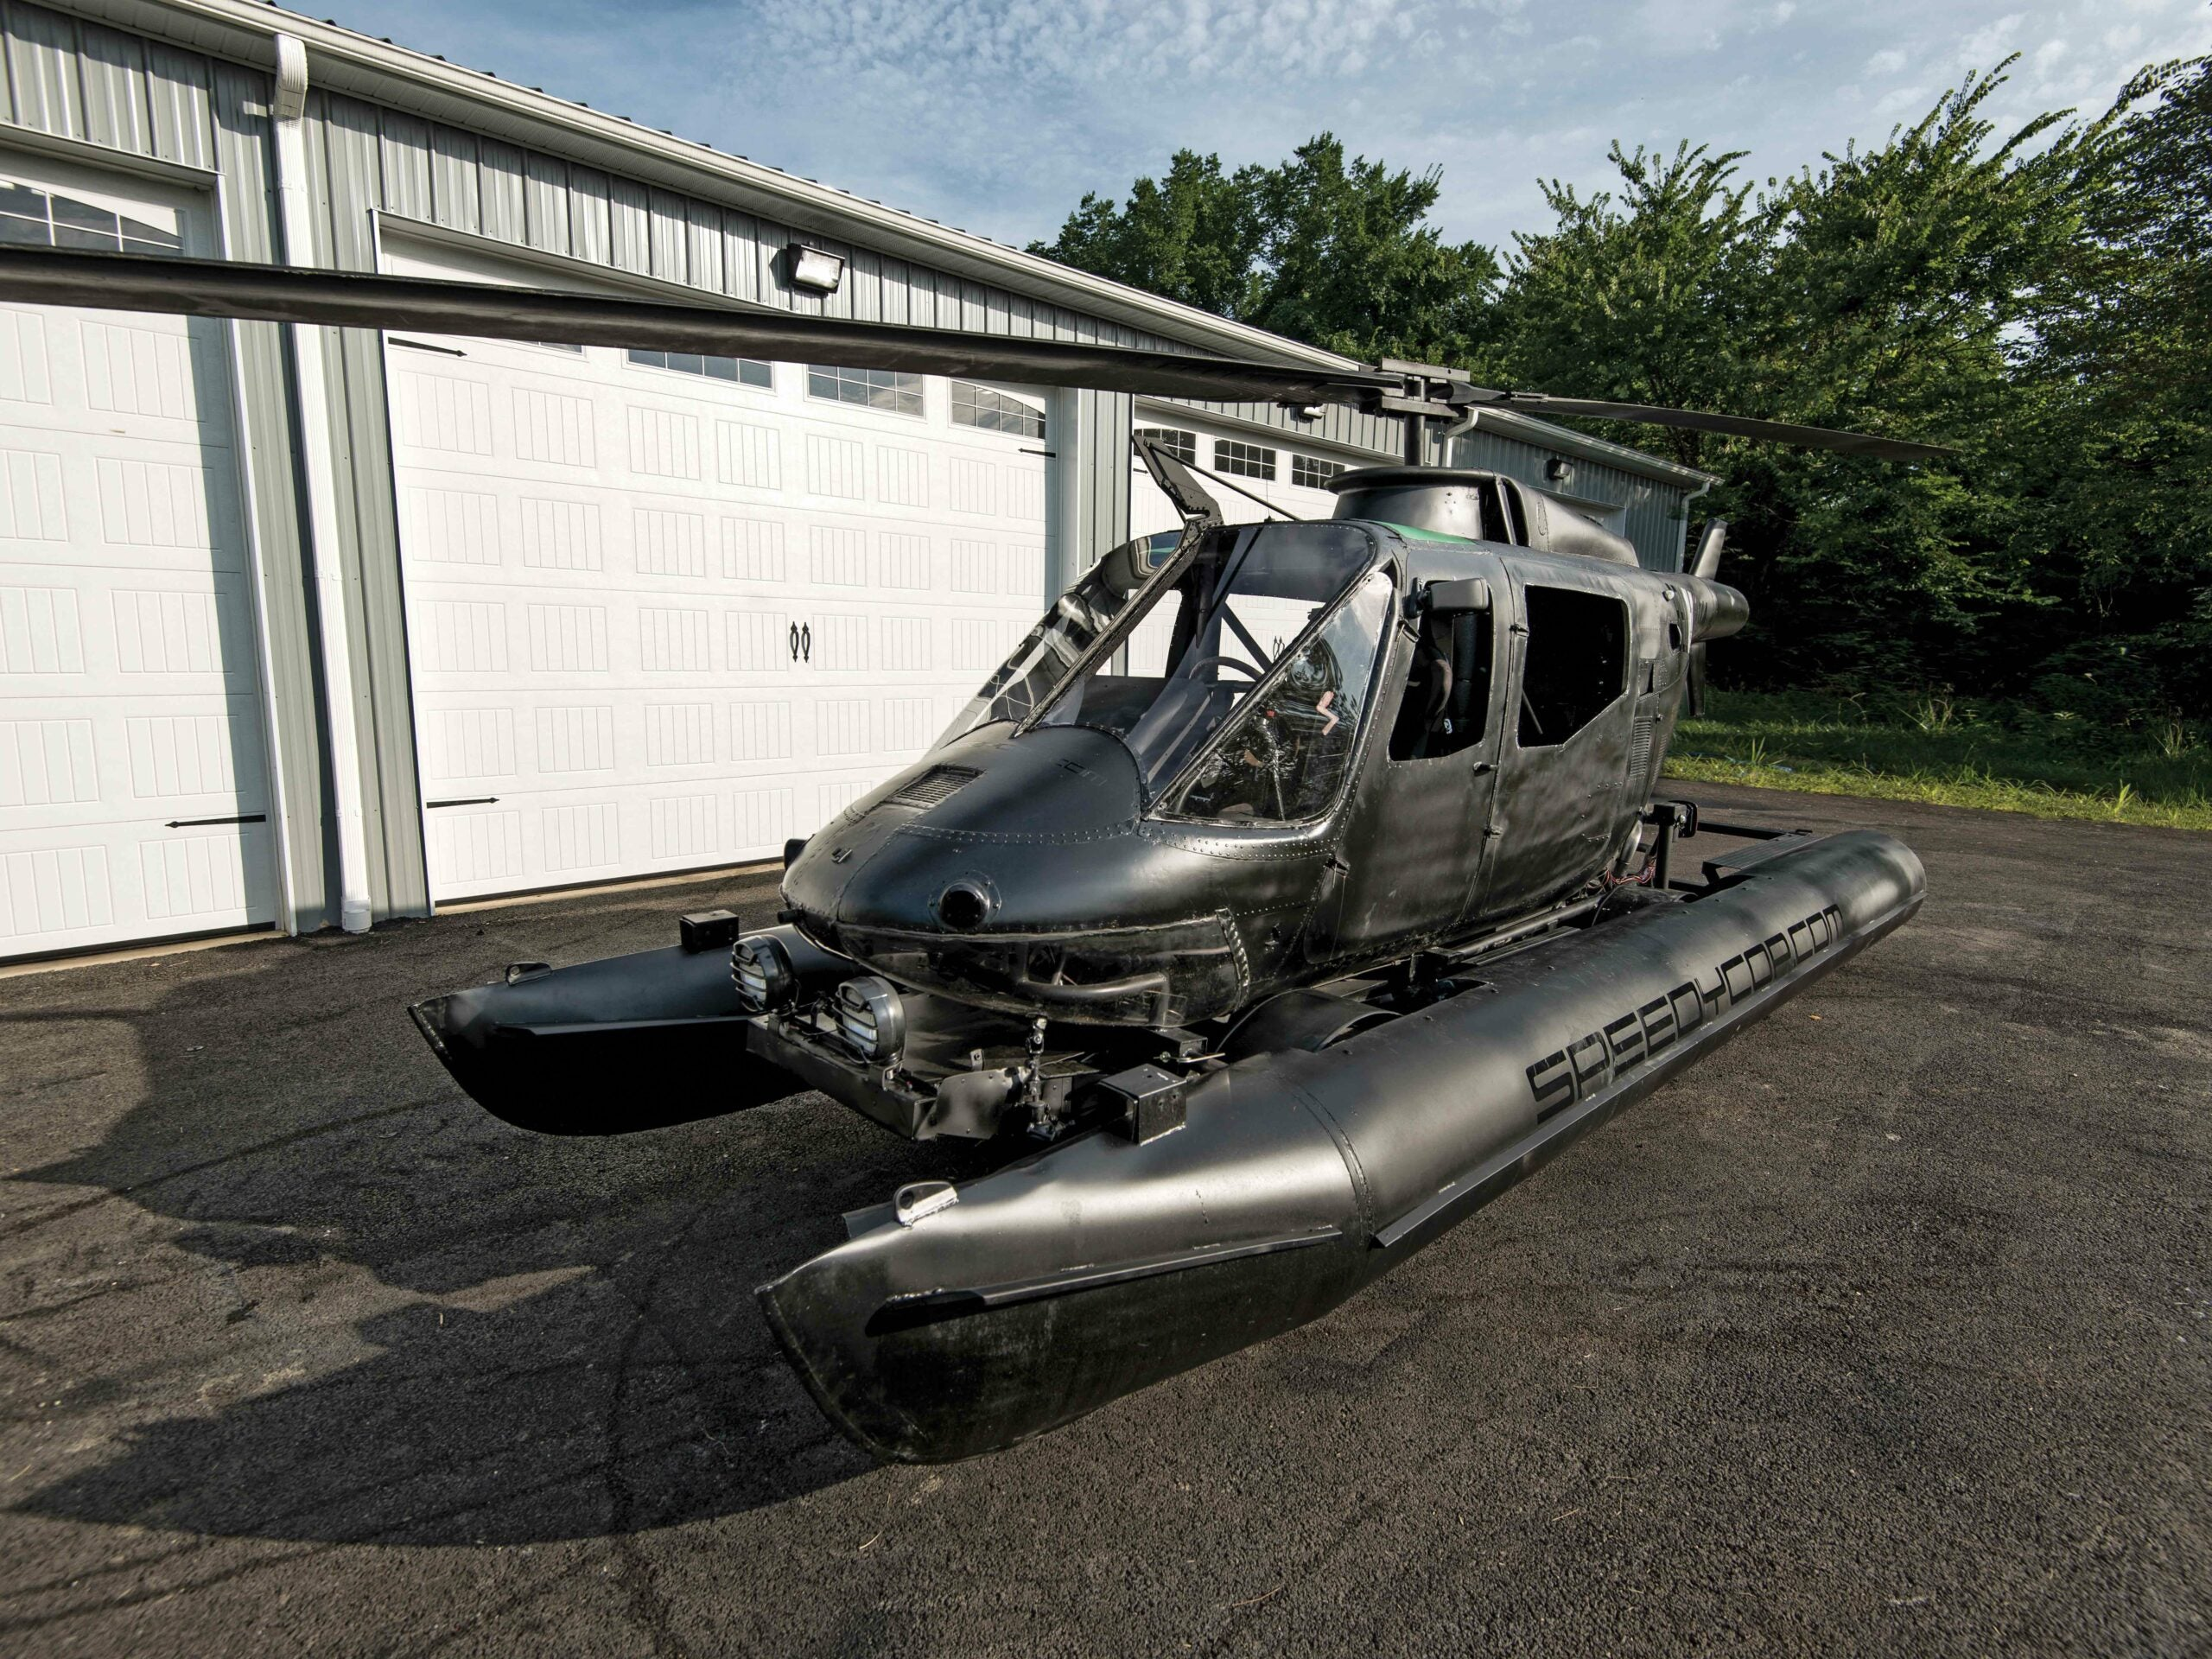 This Cop Turned A Helicopter Into An Amphibious Racecar